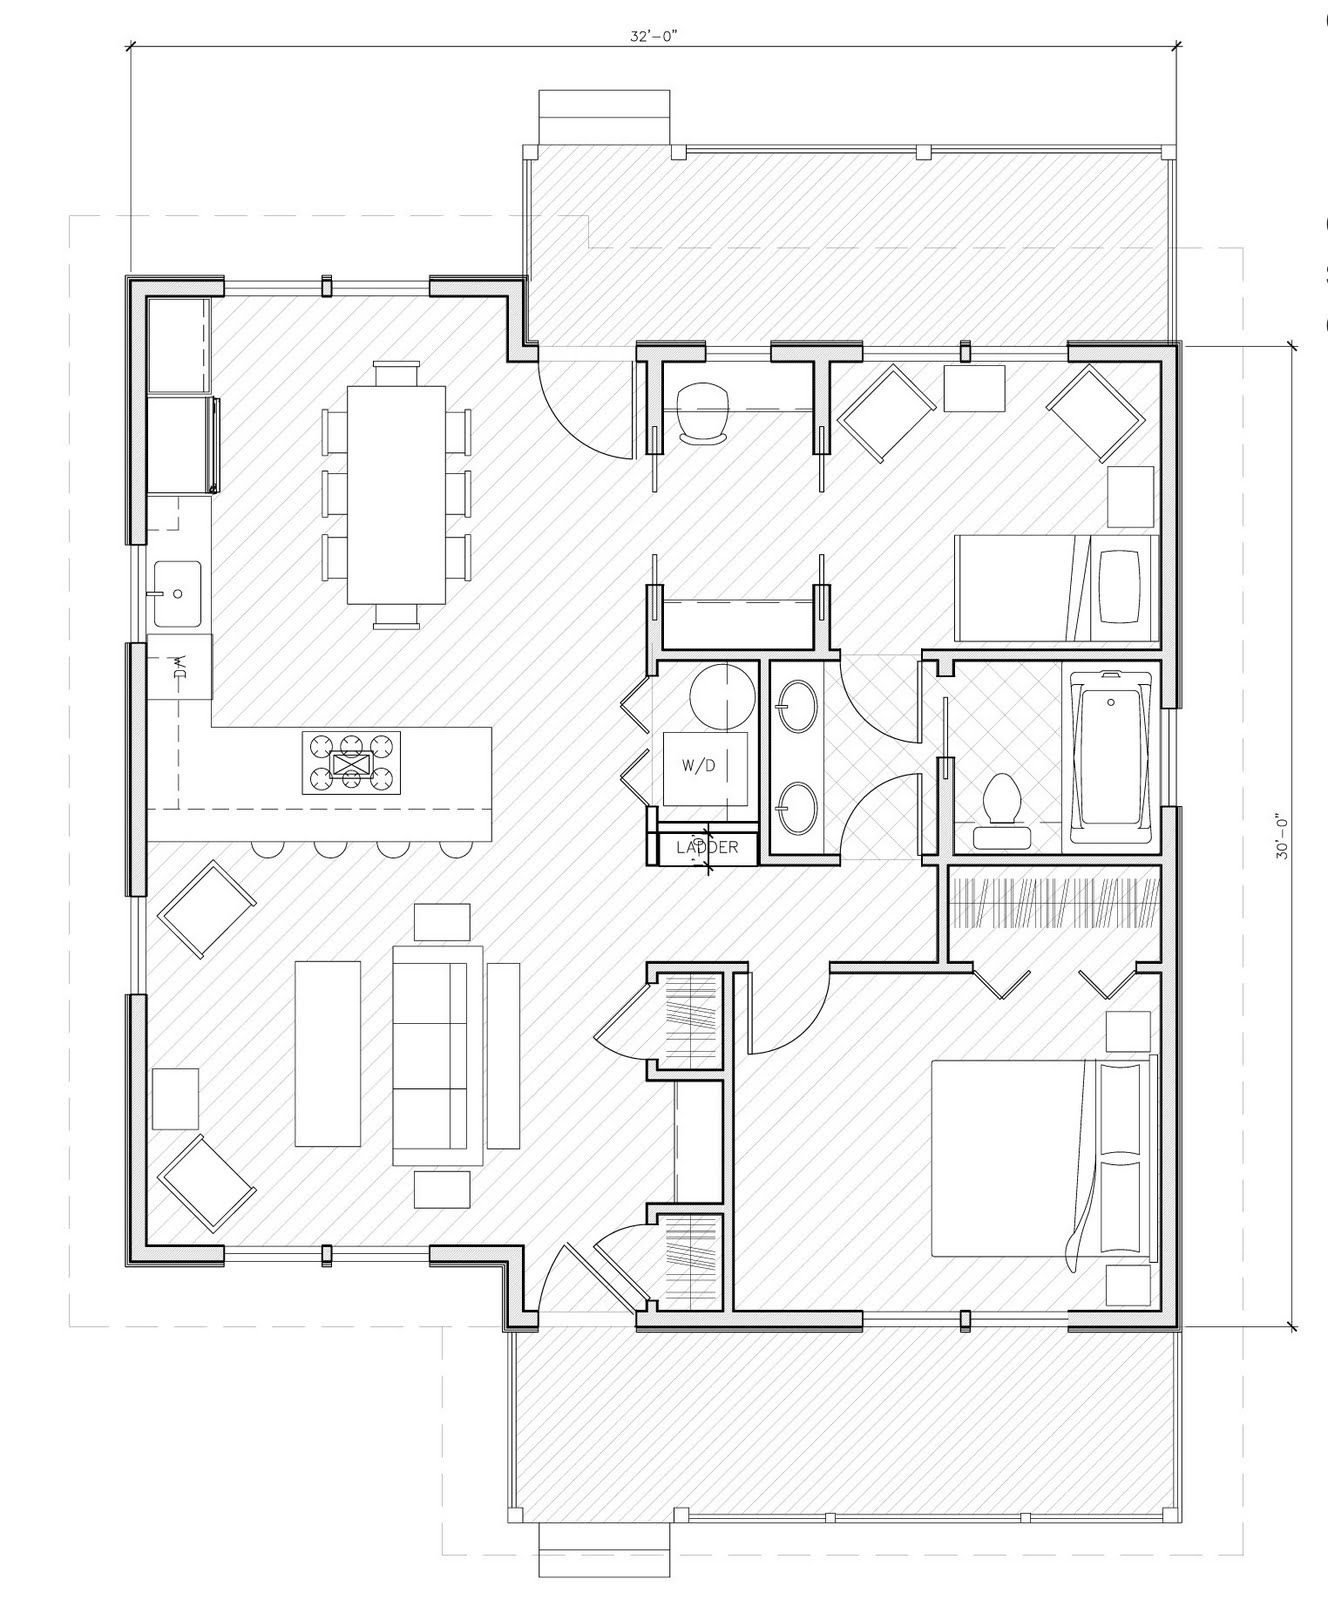 small house plans under 1000 sq ft | house design | pinterest